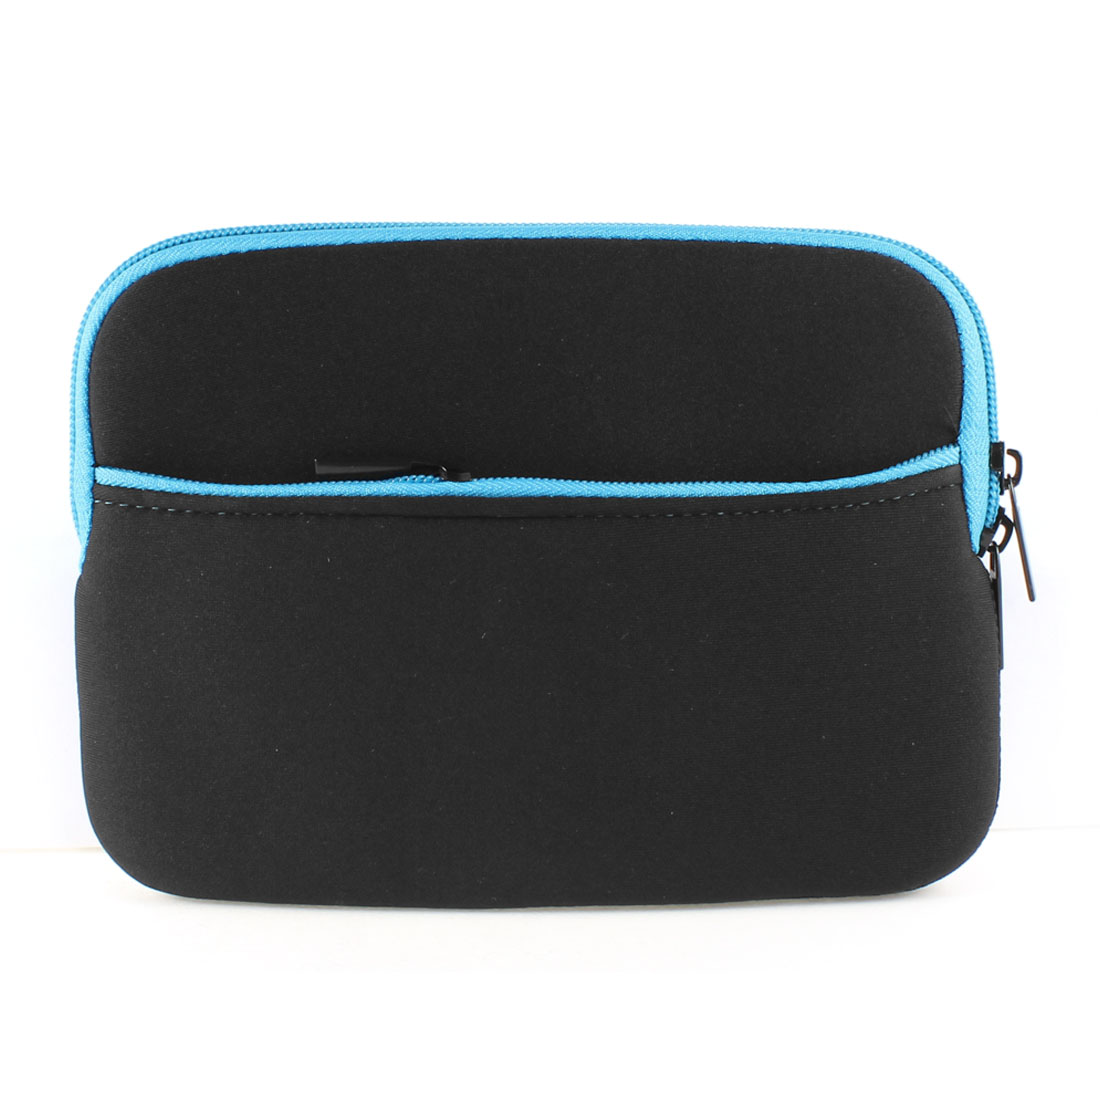 "Zipped Blue Brim Black Neoprene Sleeve Bag Case Protector for 7"" Tablet Laptop"